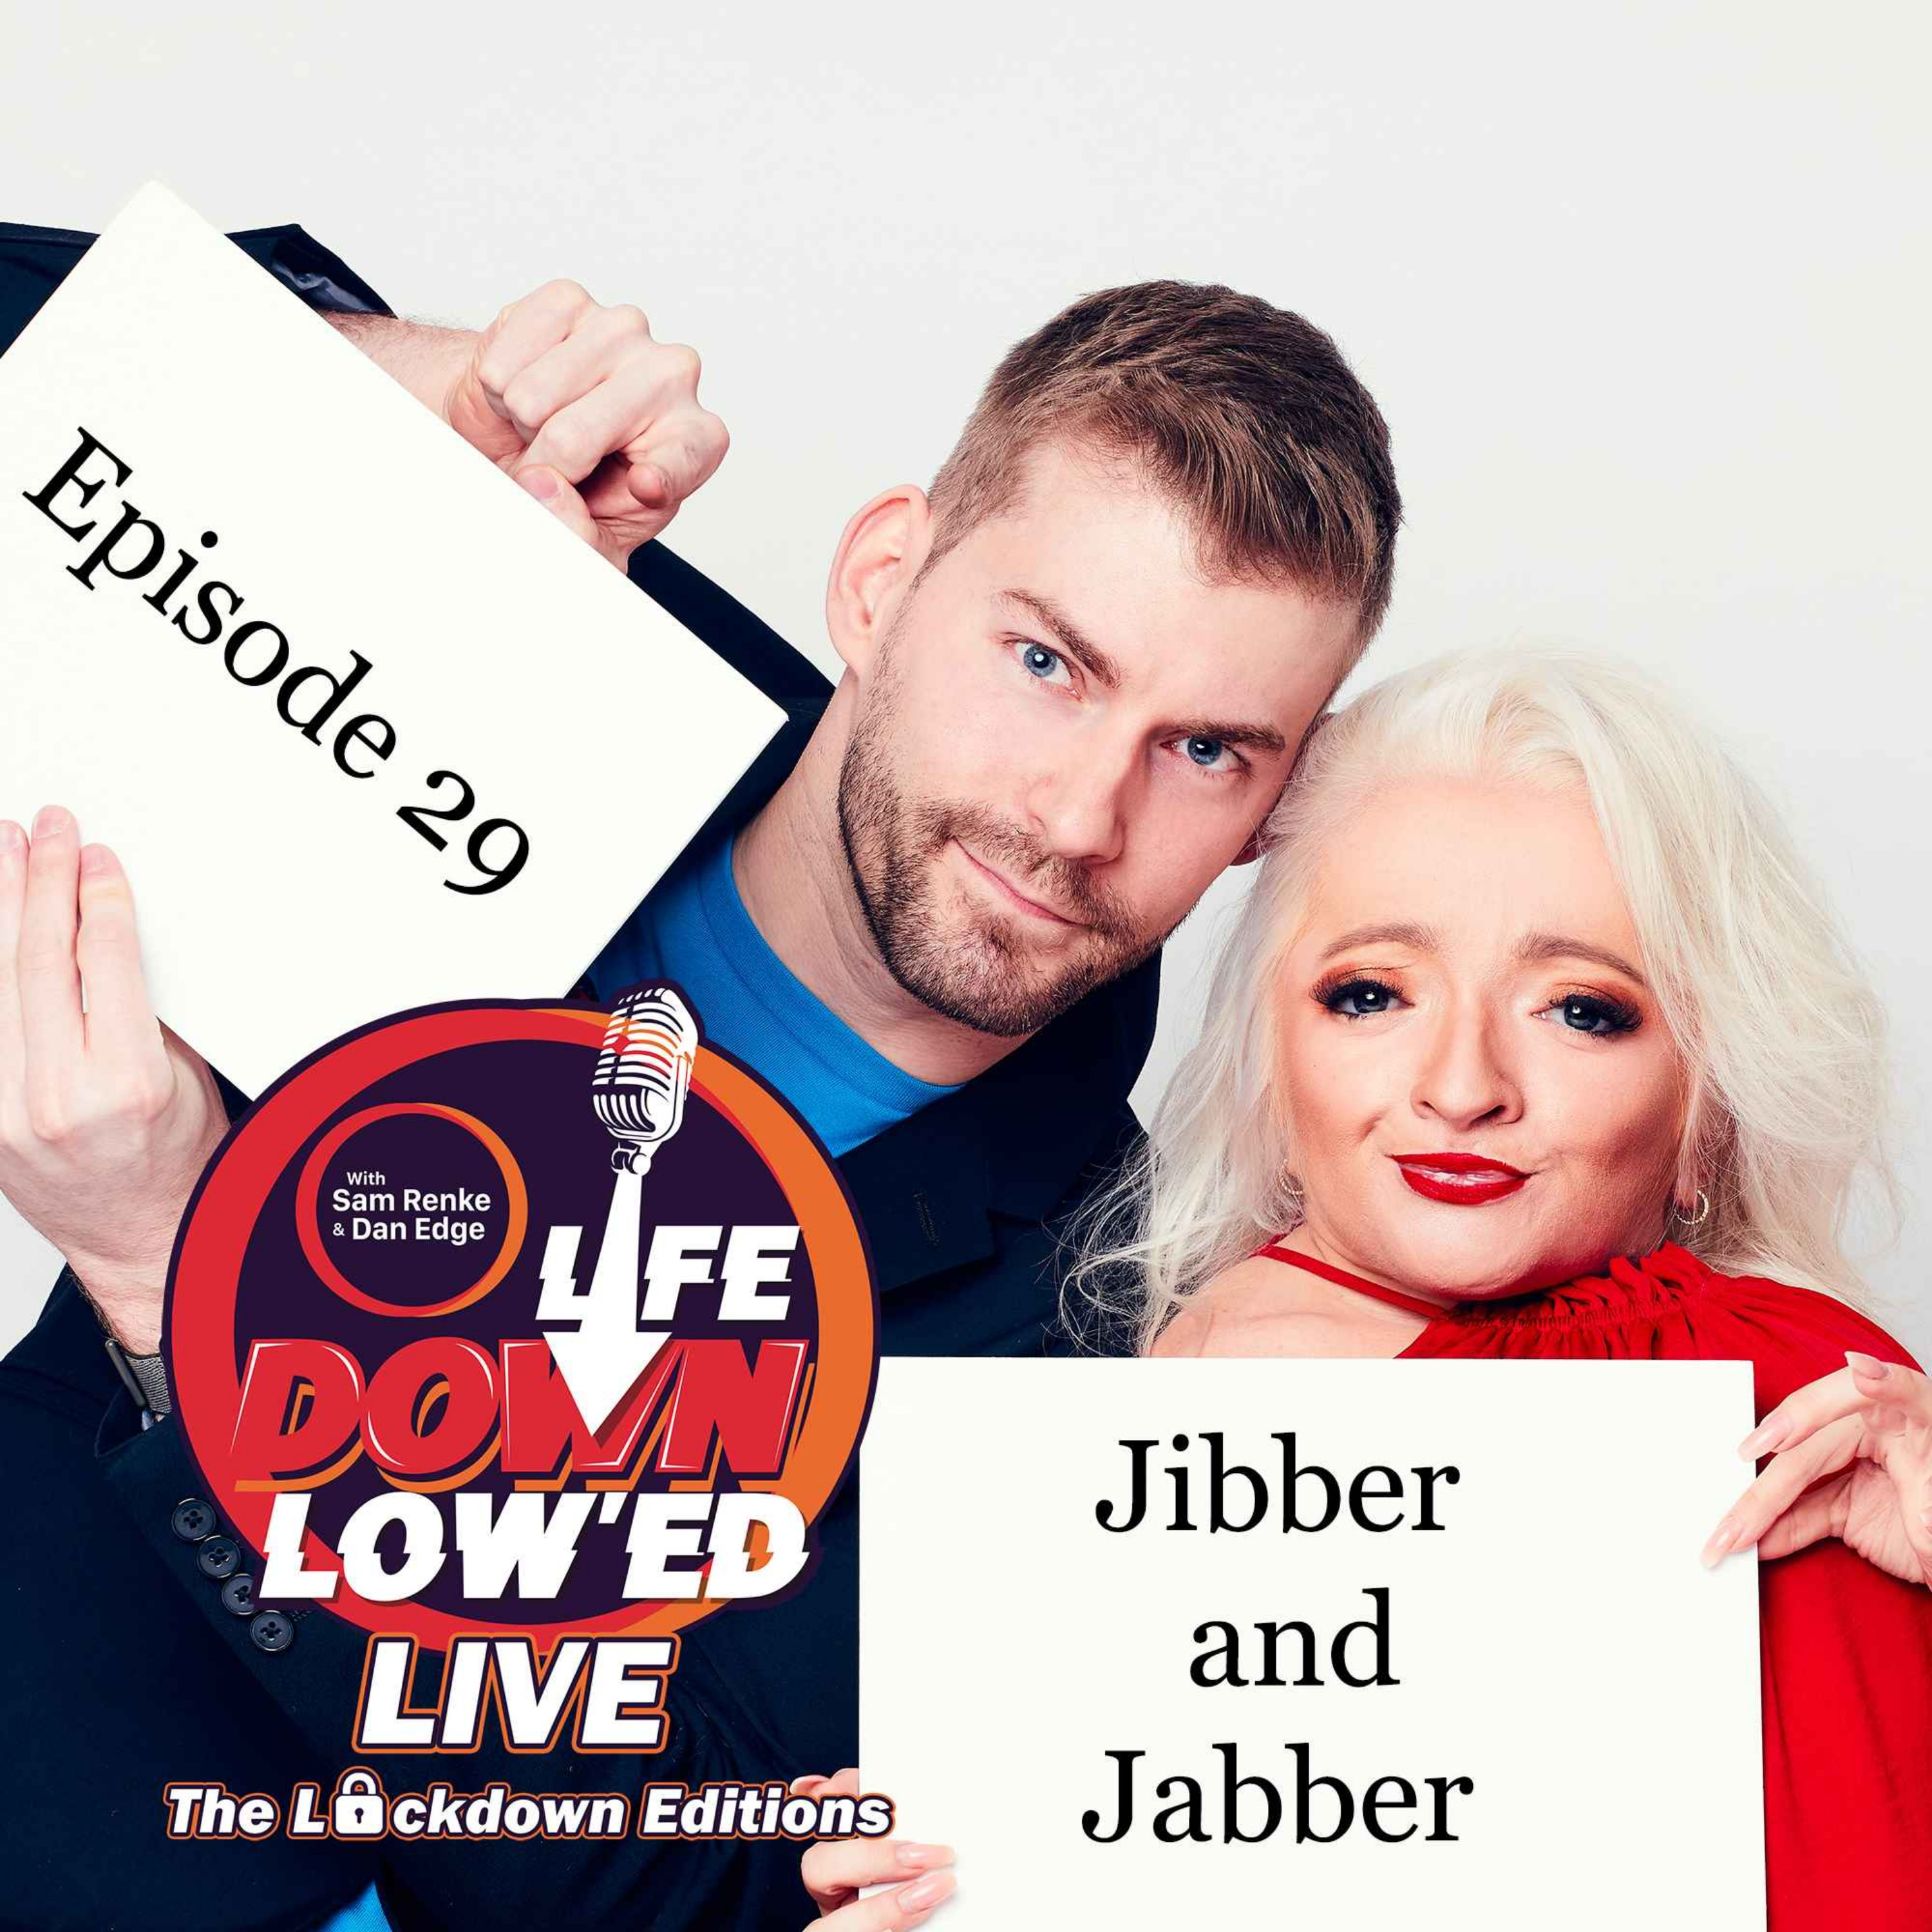 Jibber and Jabber